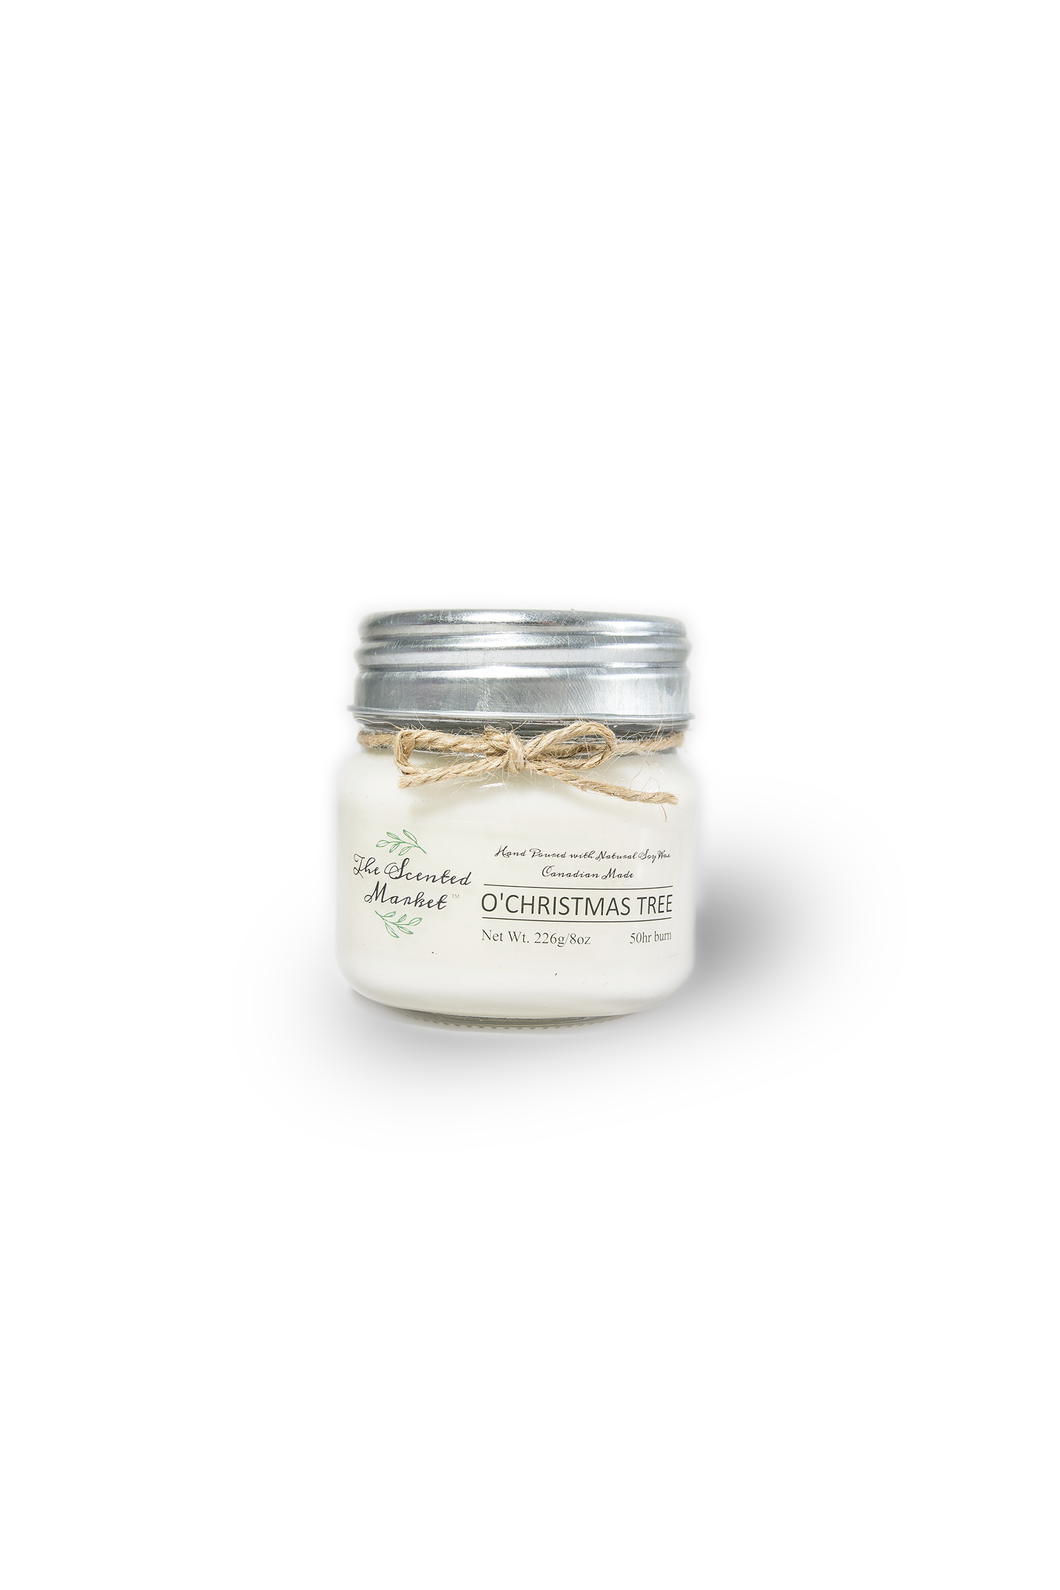 O'CHRISTMAS TREE SOY WAX CANDLE 8oz